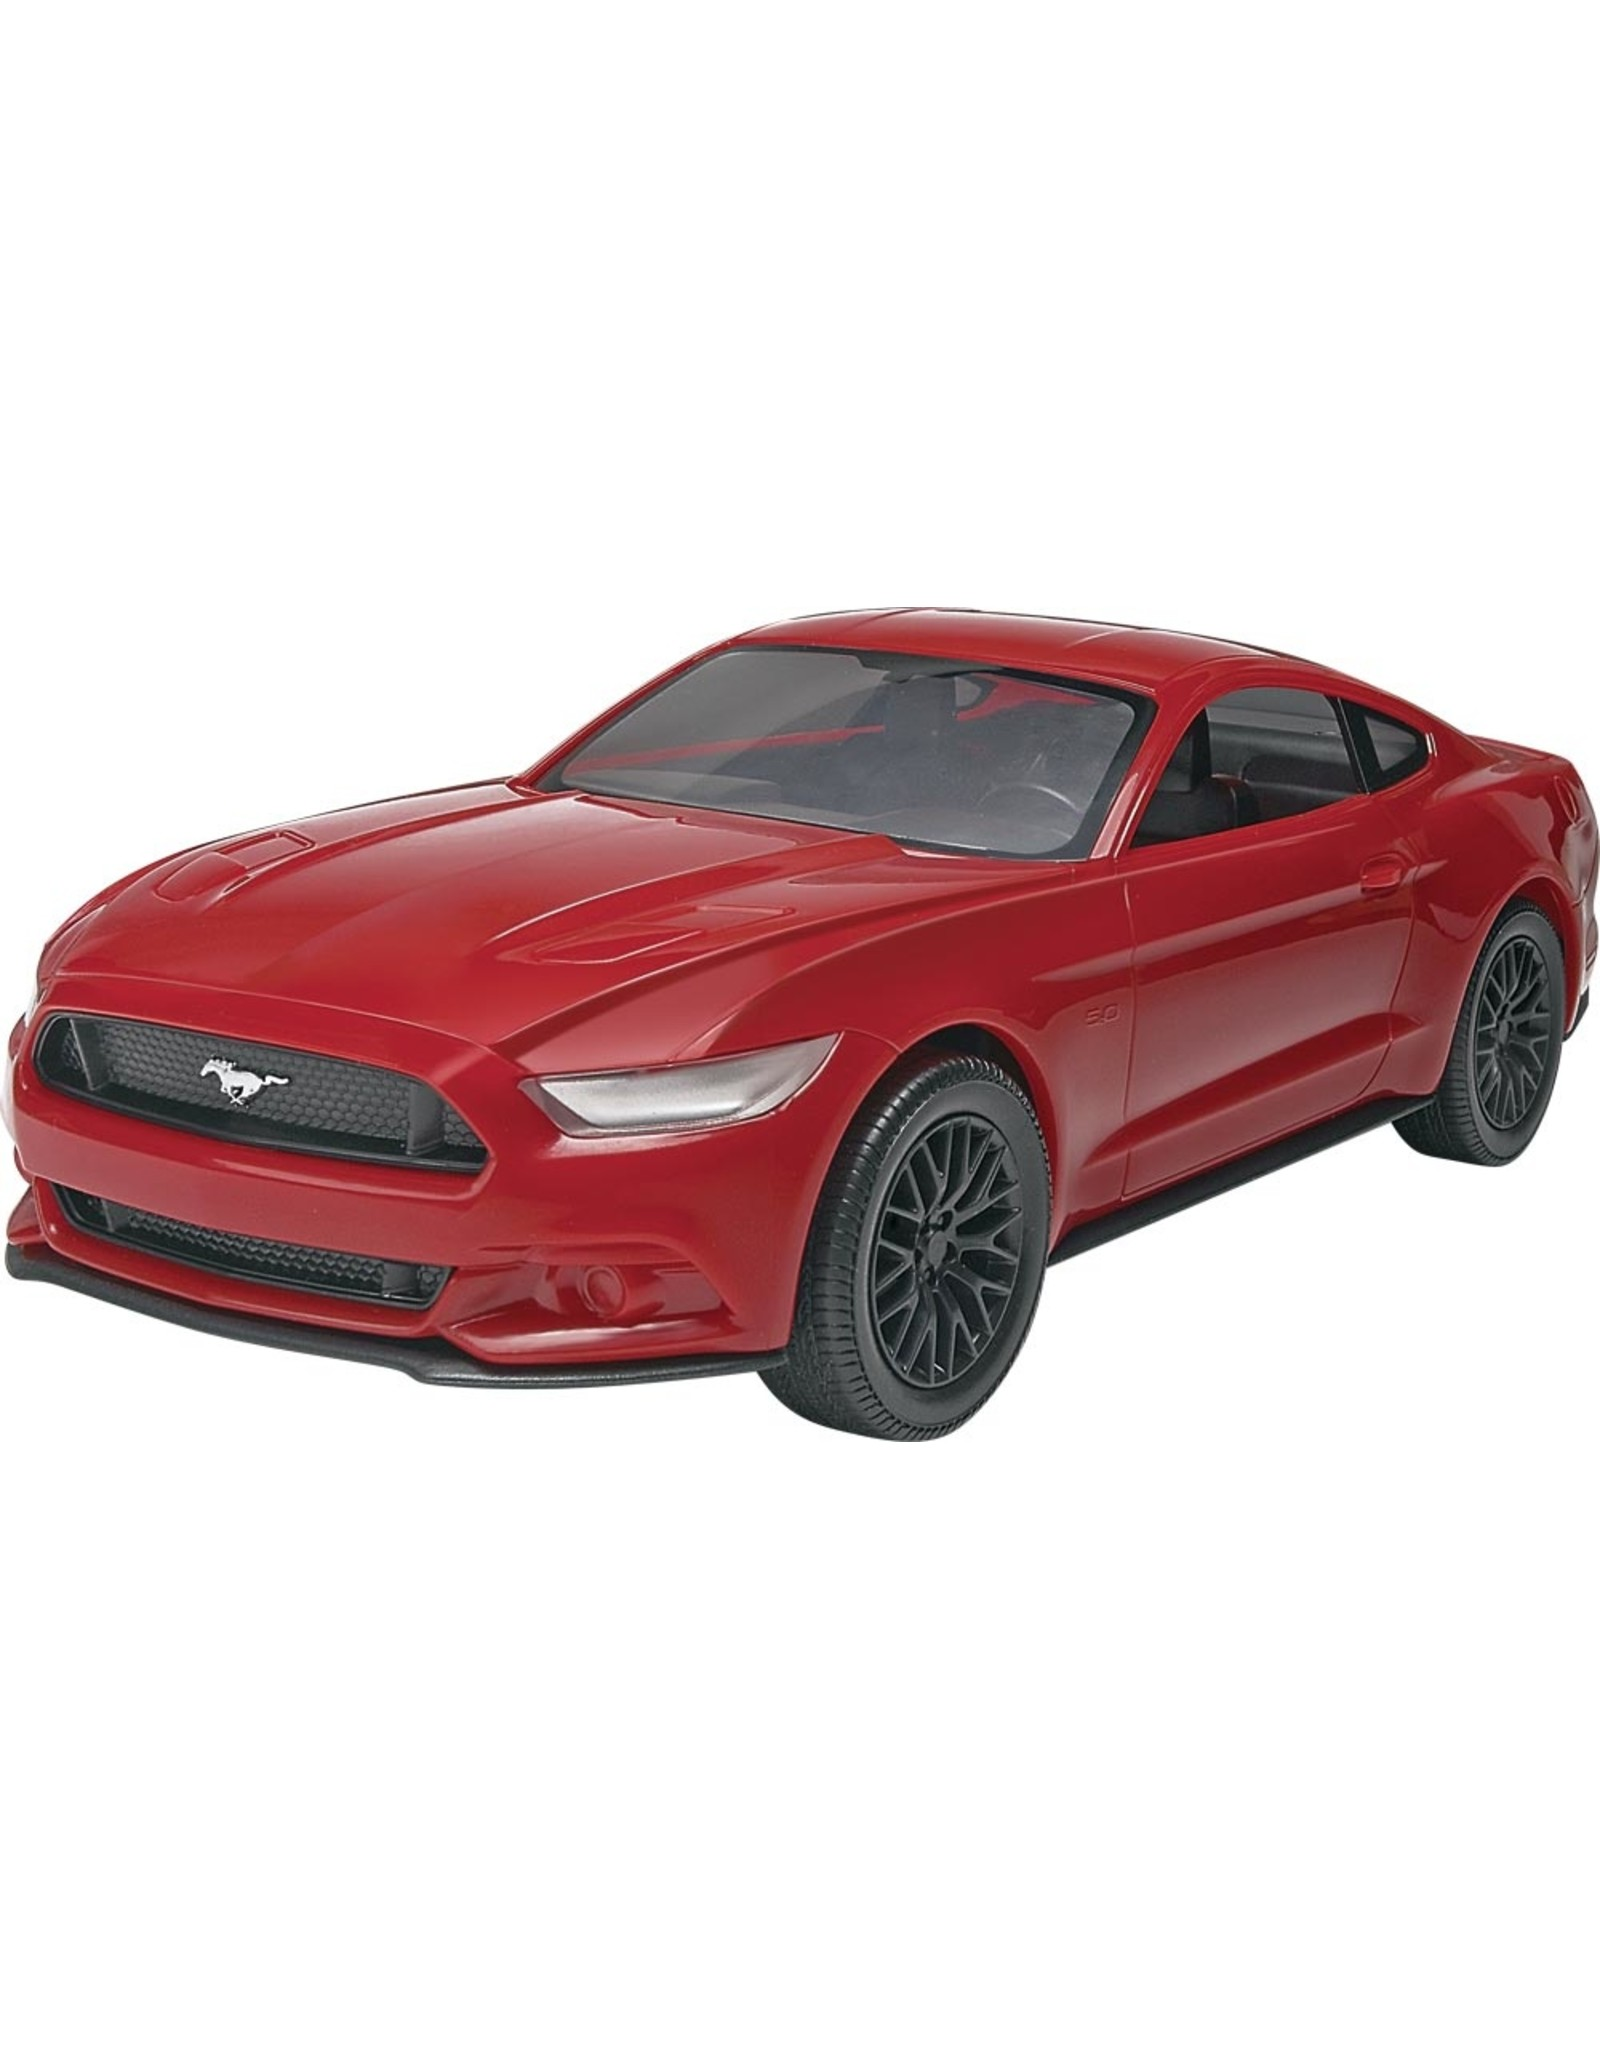 Revell 1694 - '15 Mustang GT Red 1/25